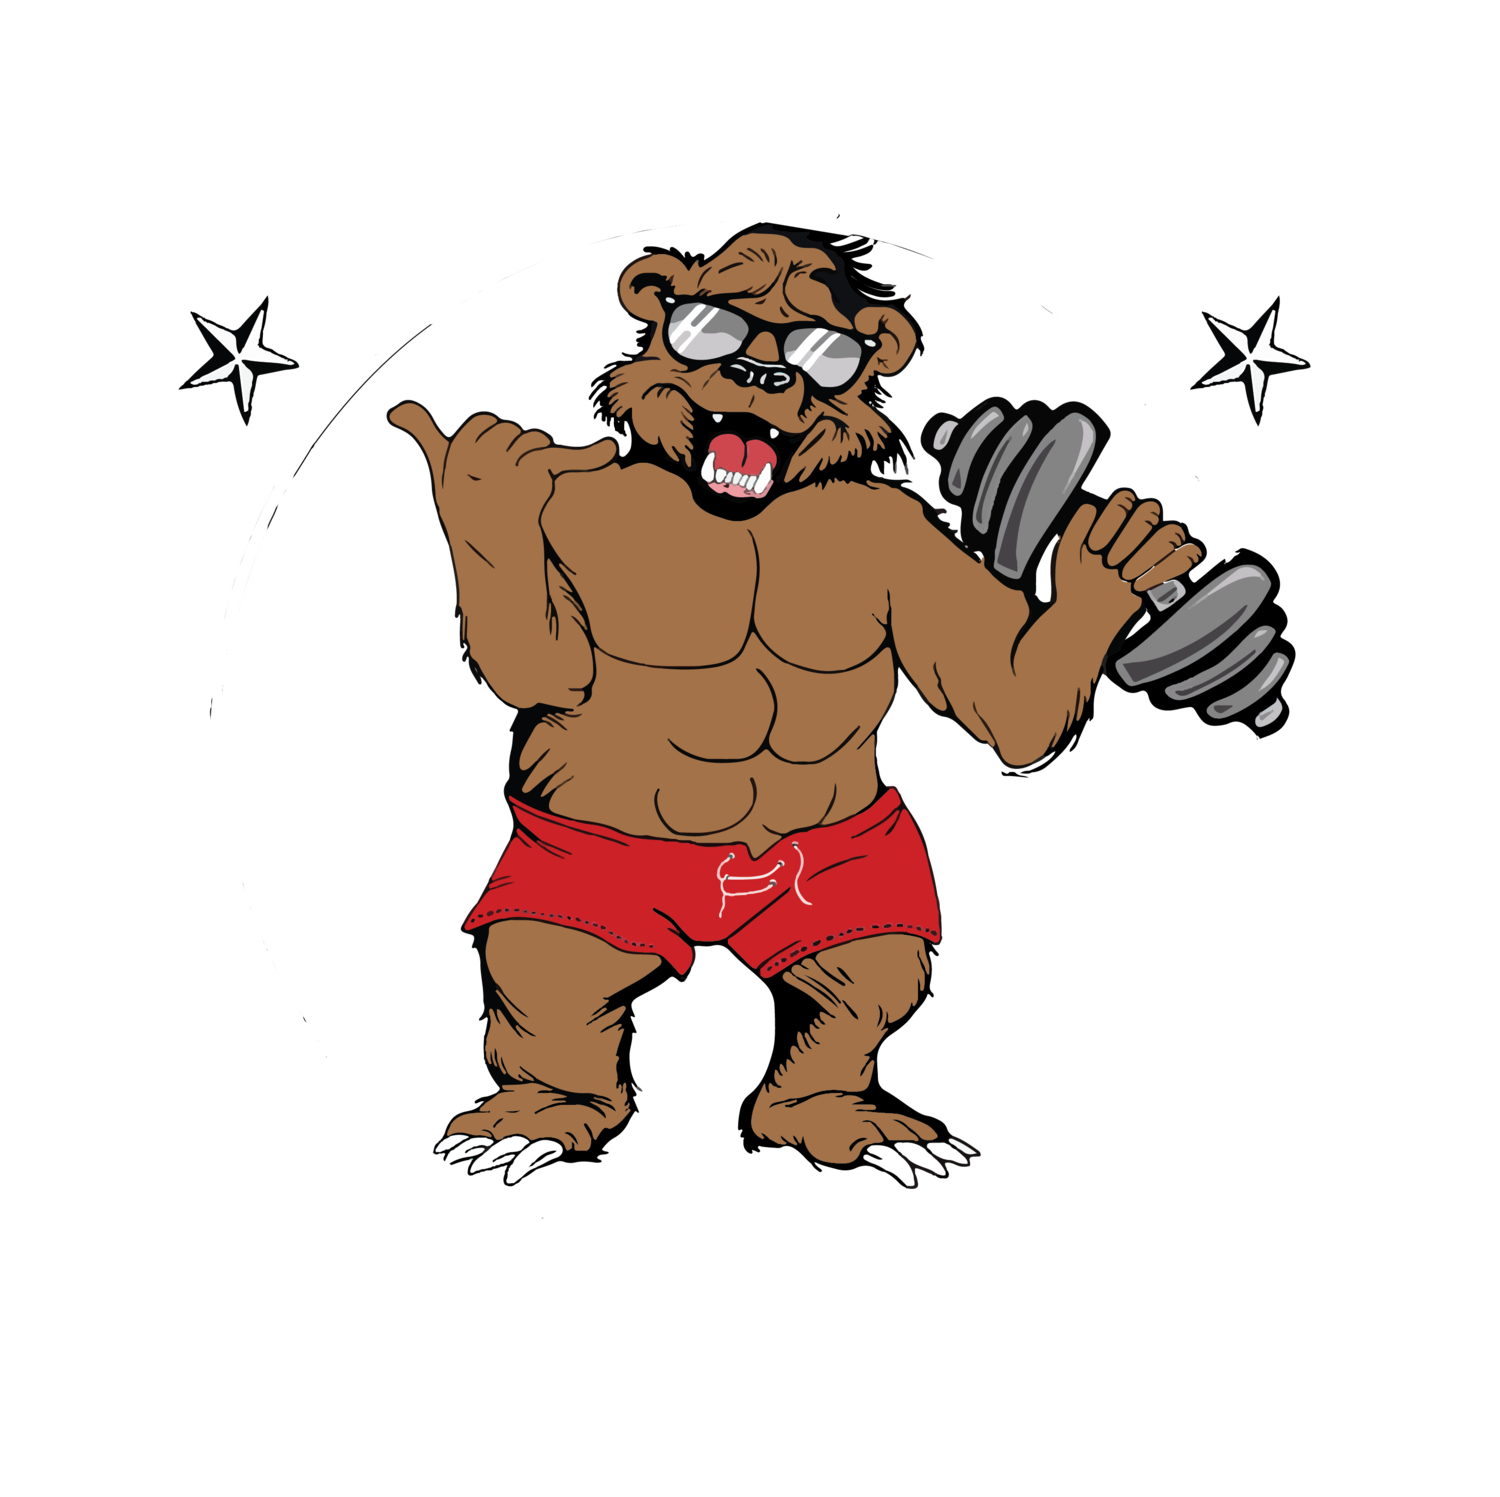 Weight clipart strength and conditioning. Bearfit training systemsbearfit